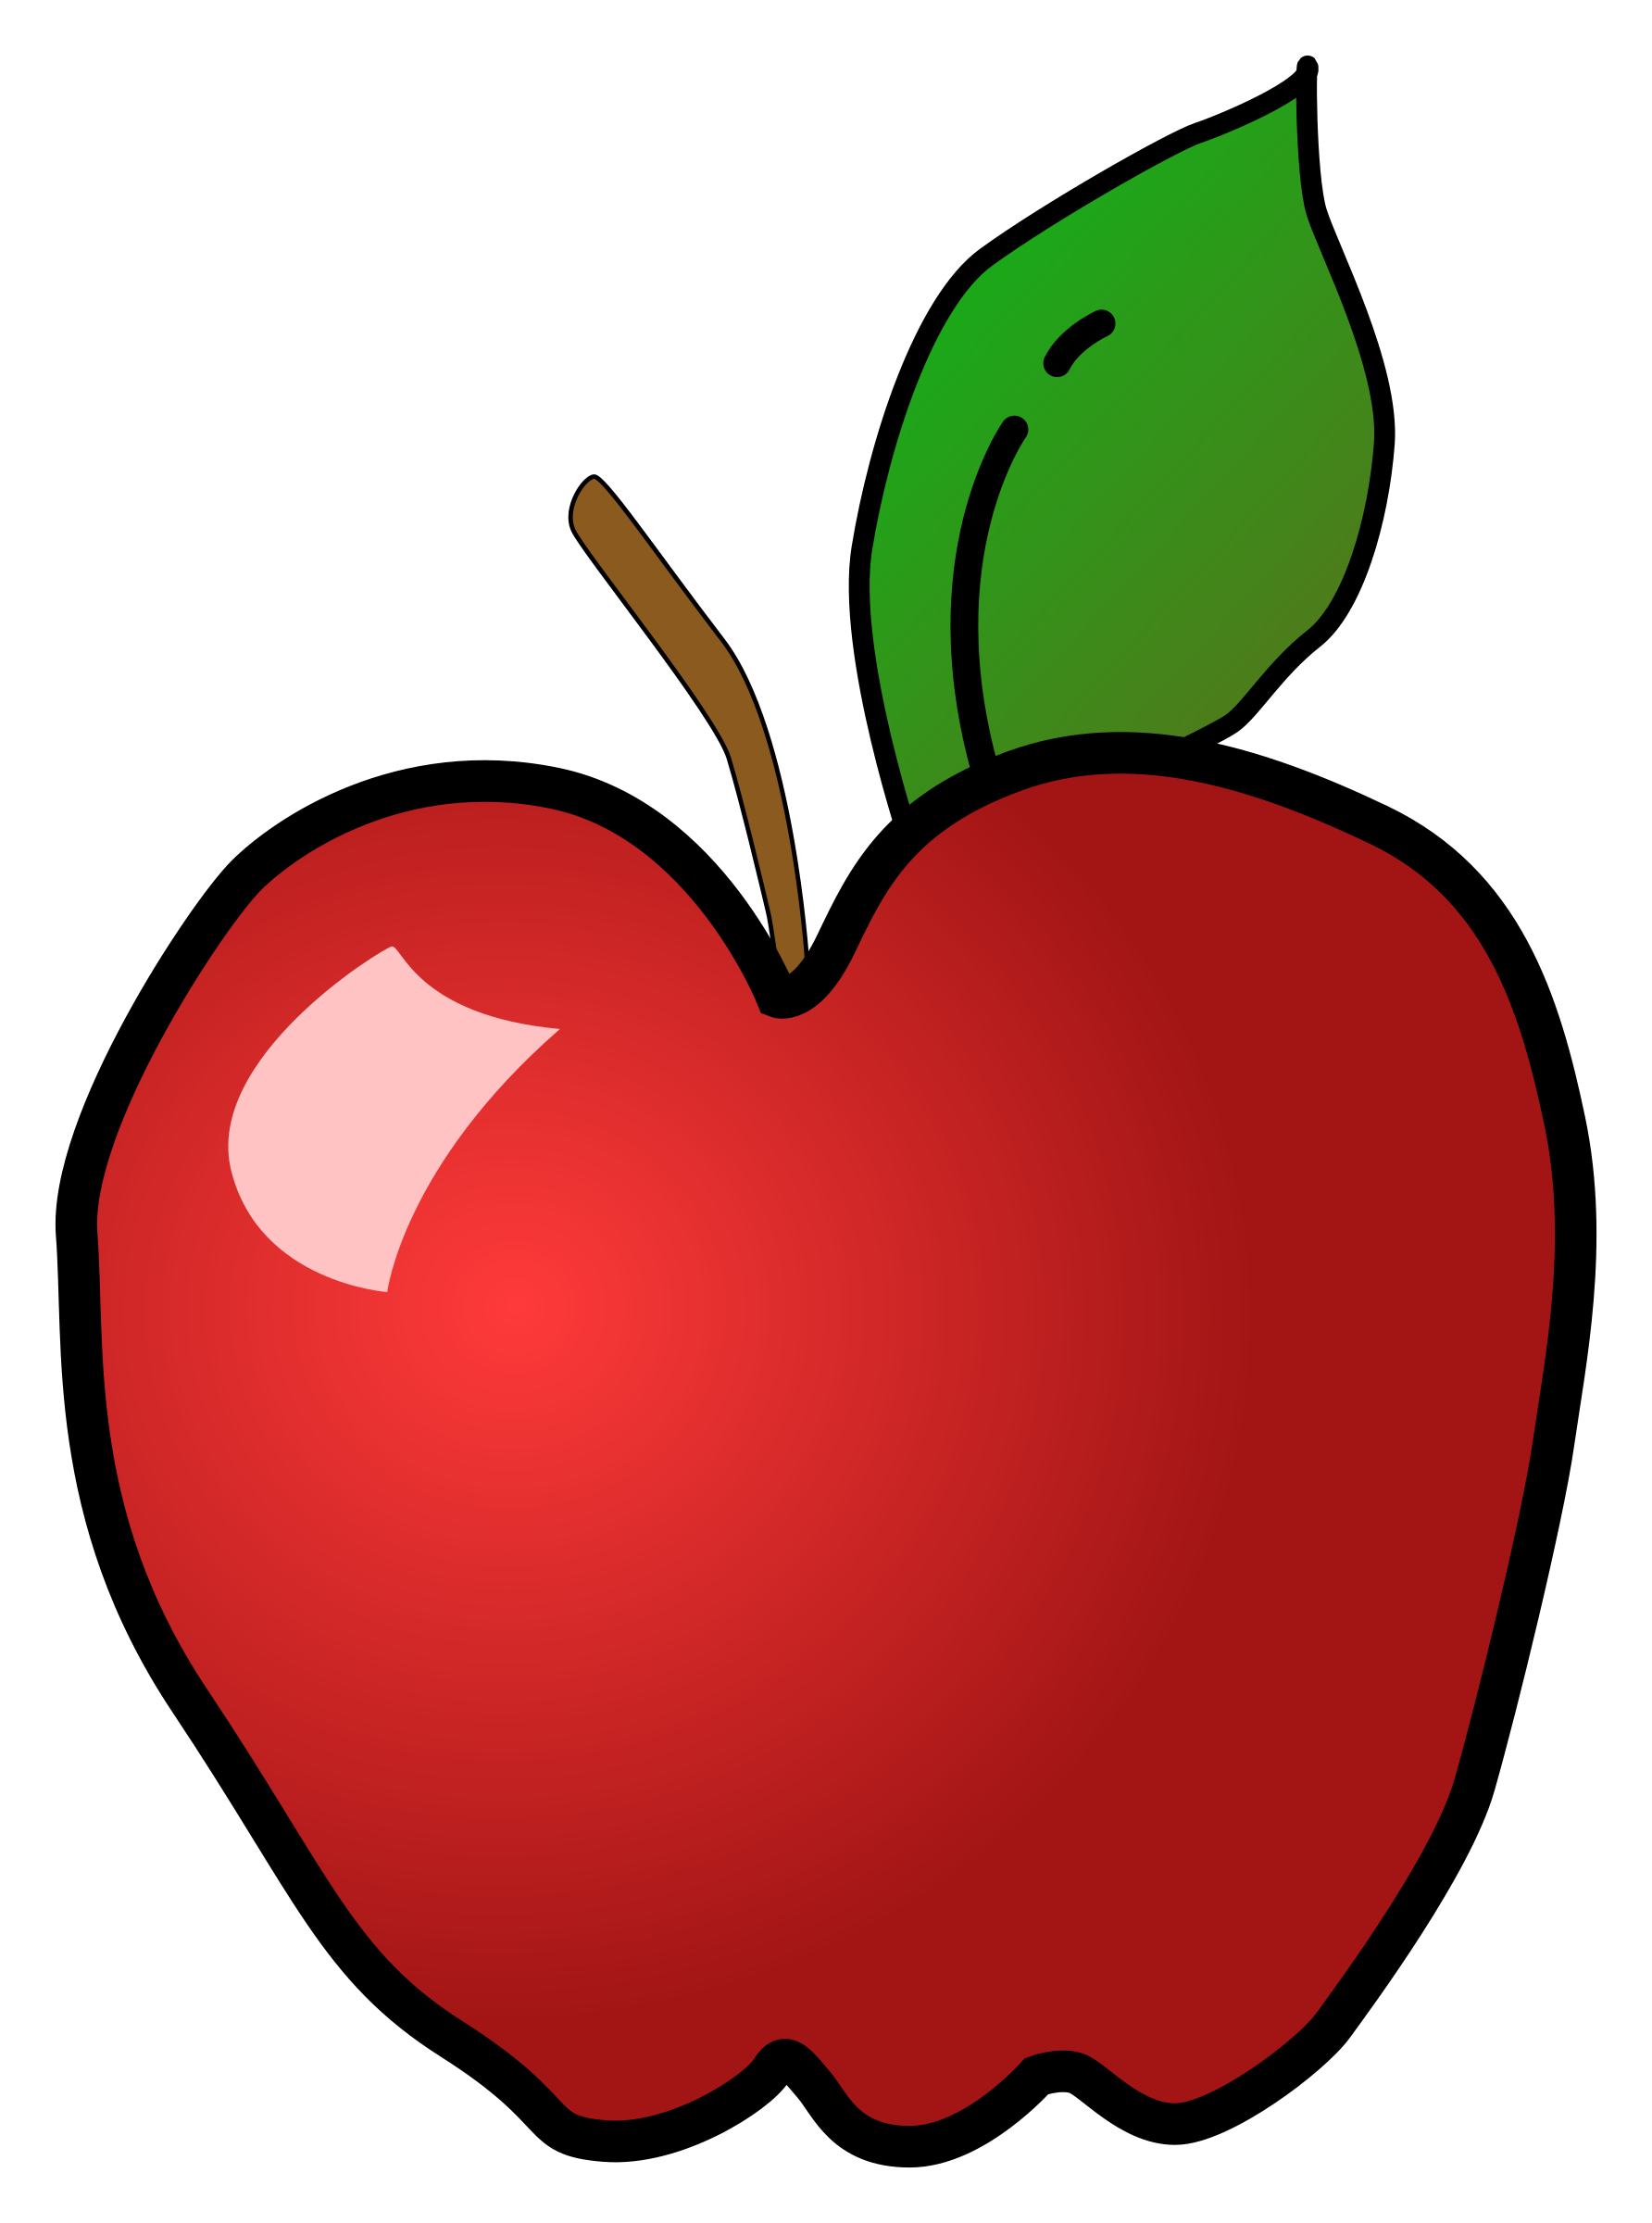 Polished Apple by KAMC